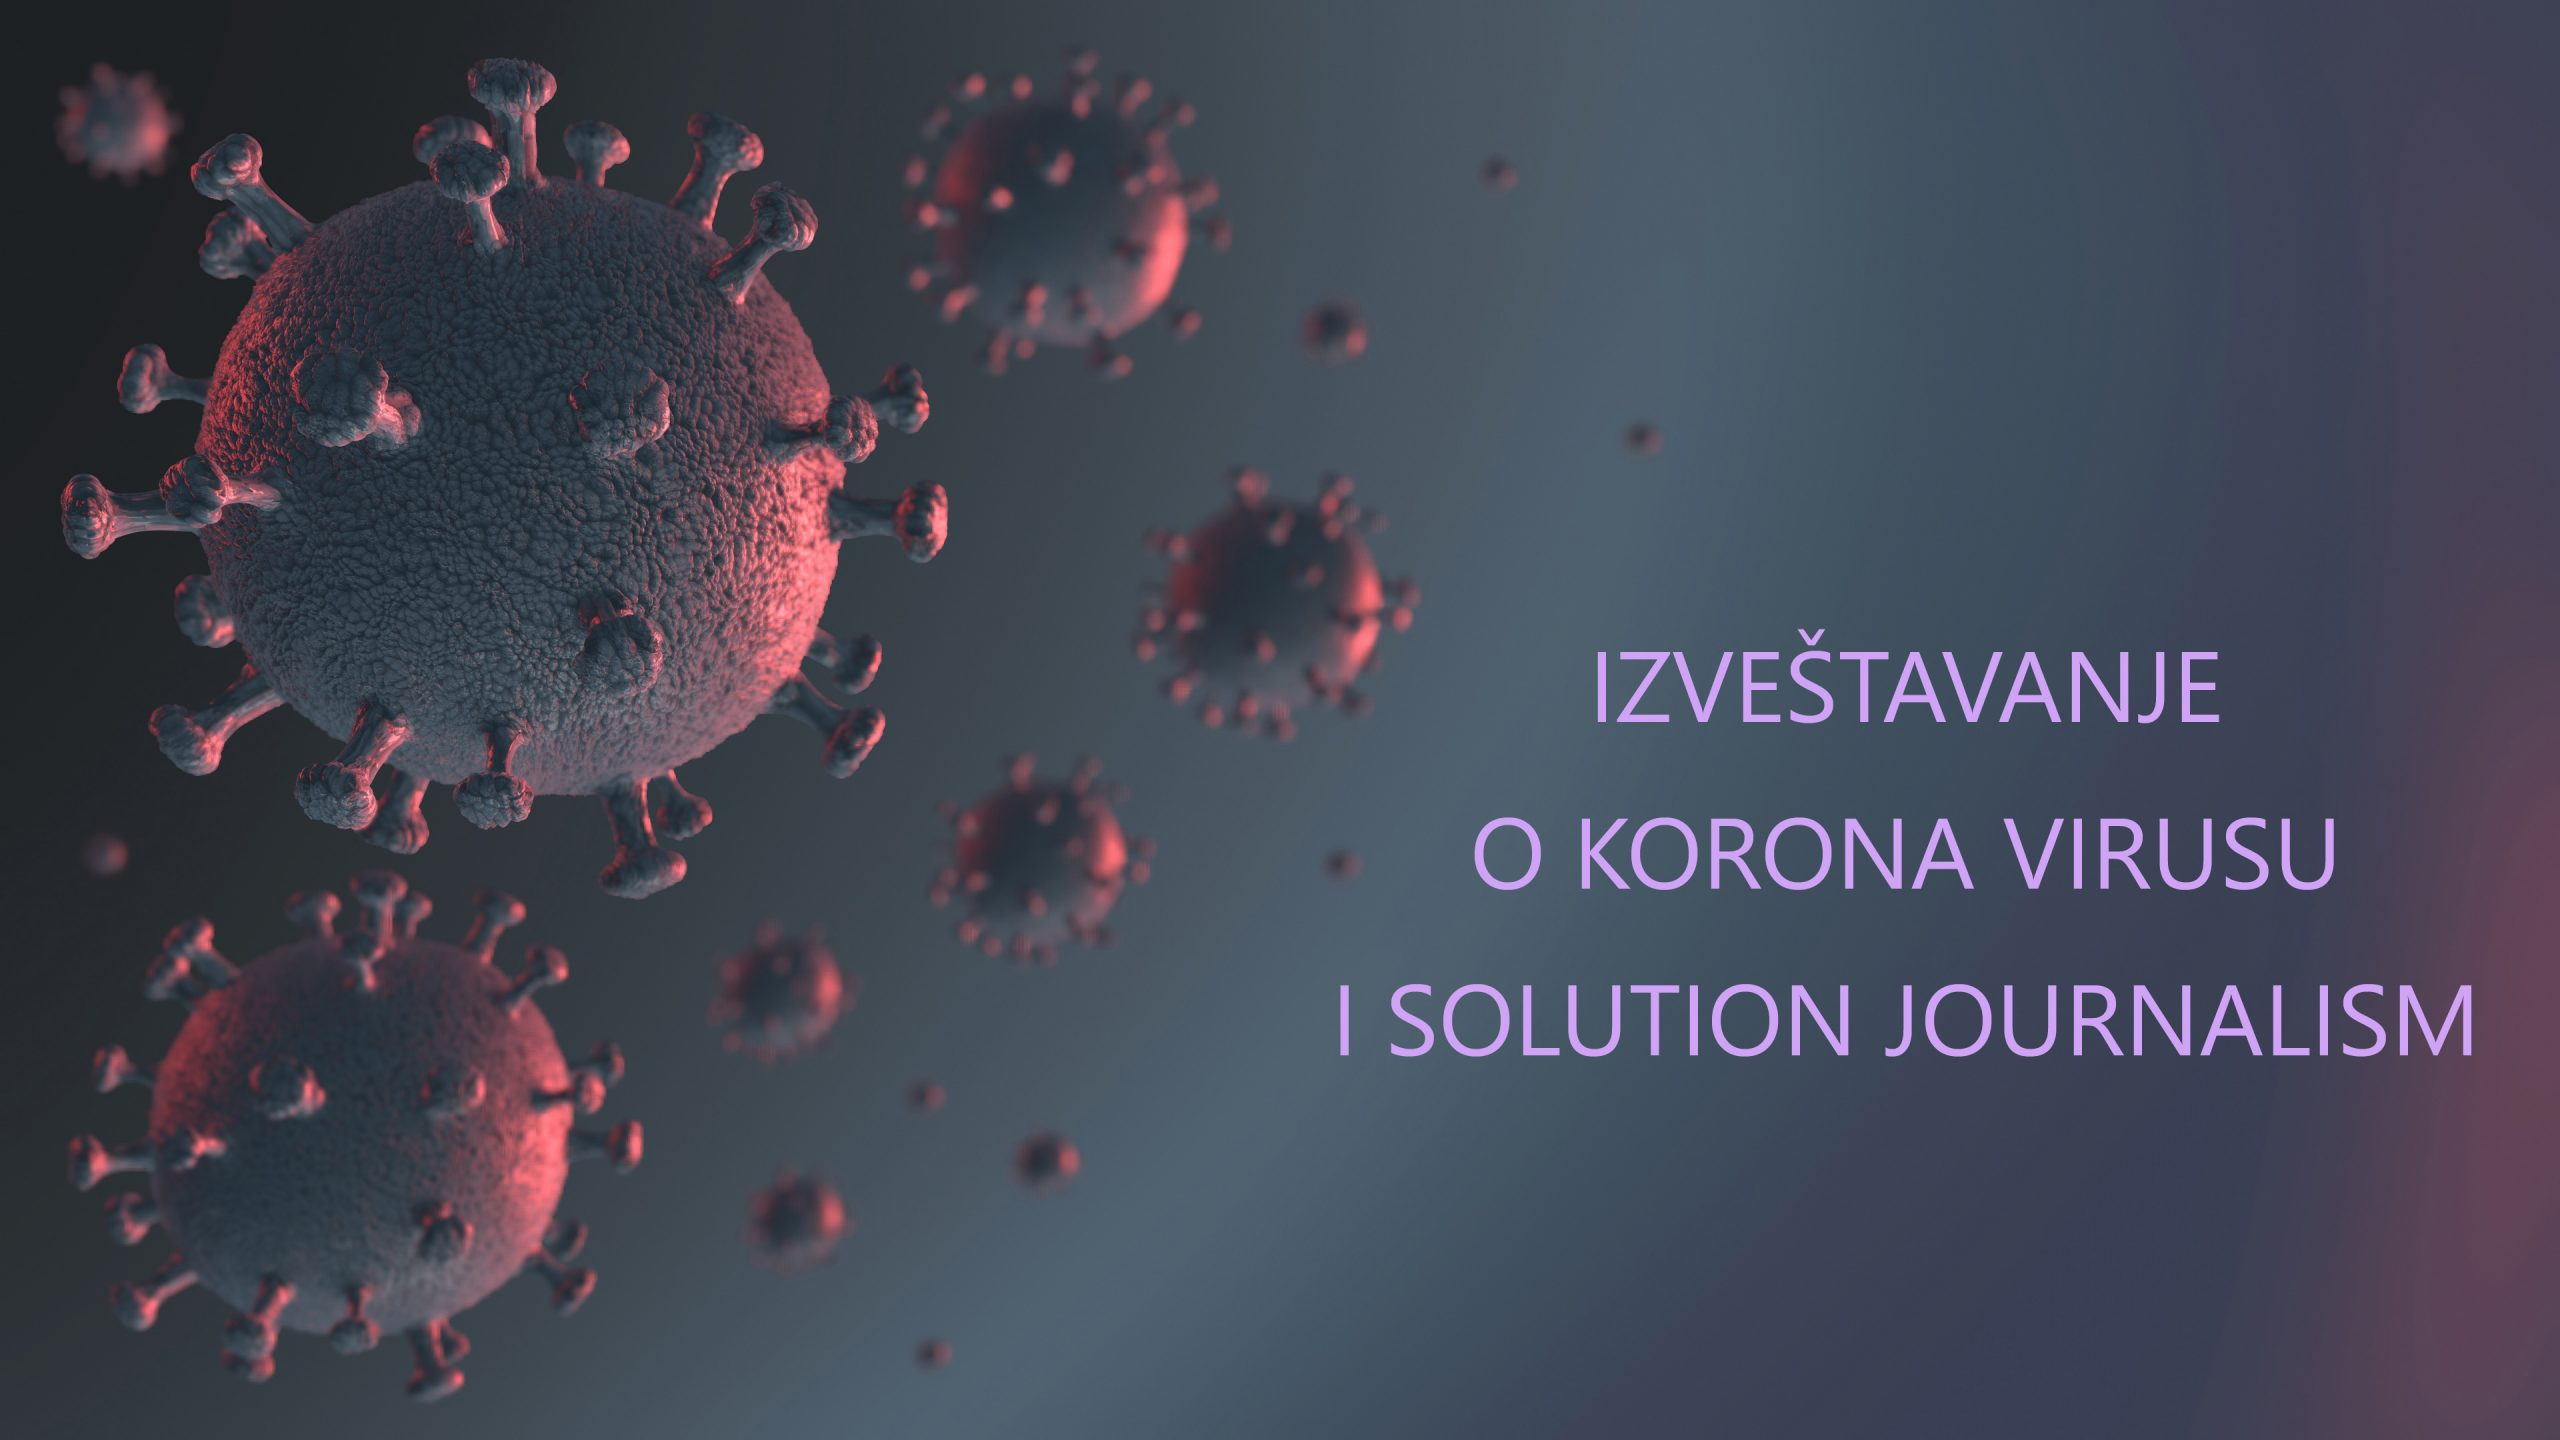 IZVEŠTAVANJE O KORONA VIRUSU I SOLUTION JOURNALISM